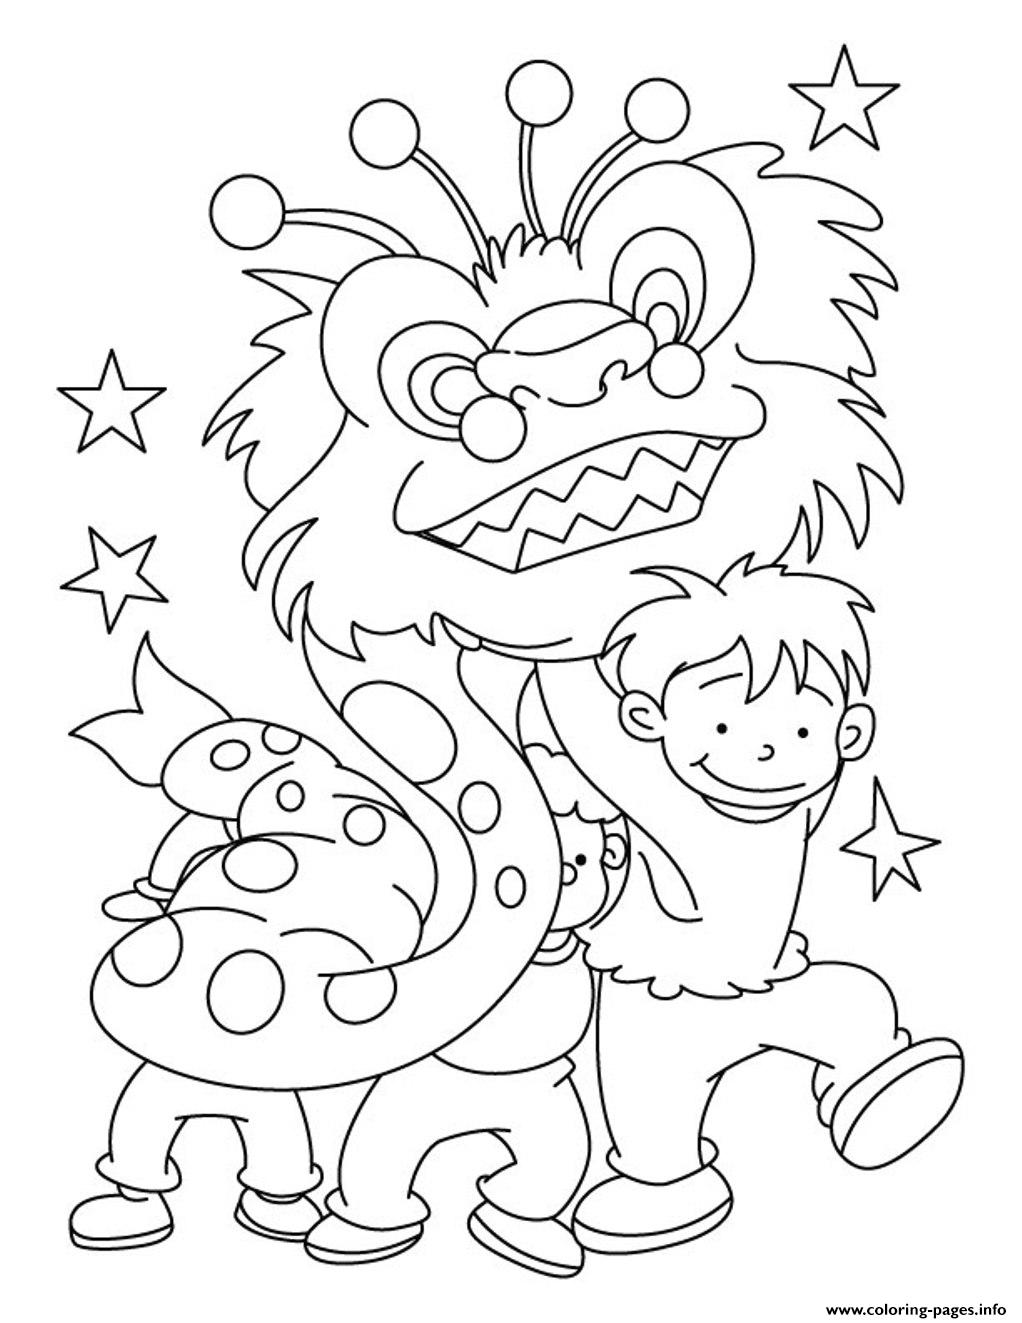 coloring pages chinese dragon dragon chinese new year s1553 coloring pages printable chinese pages coloring dragon